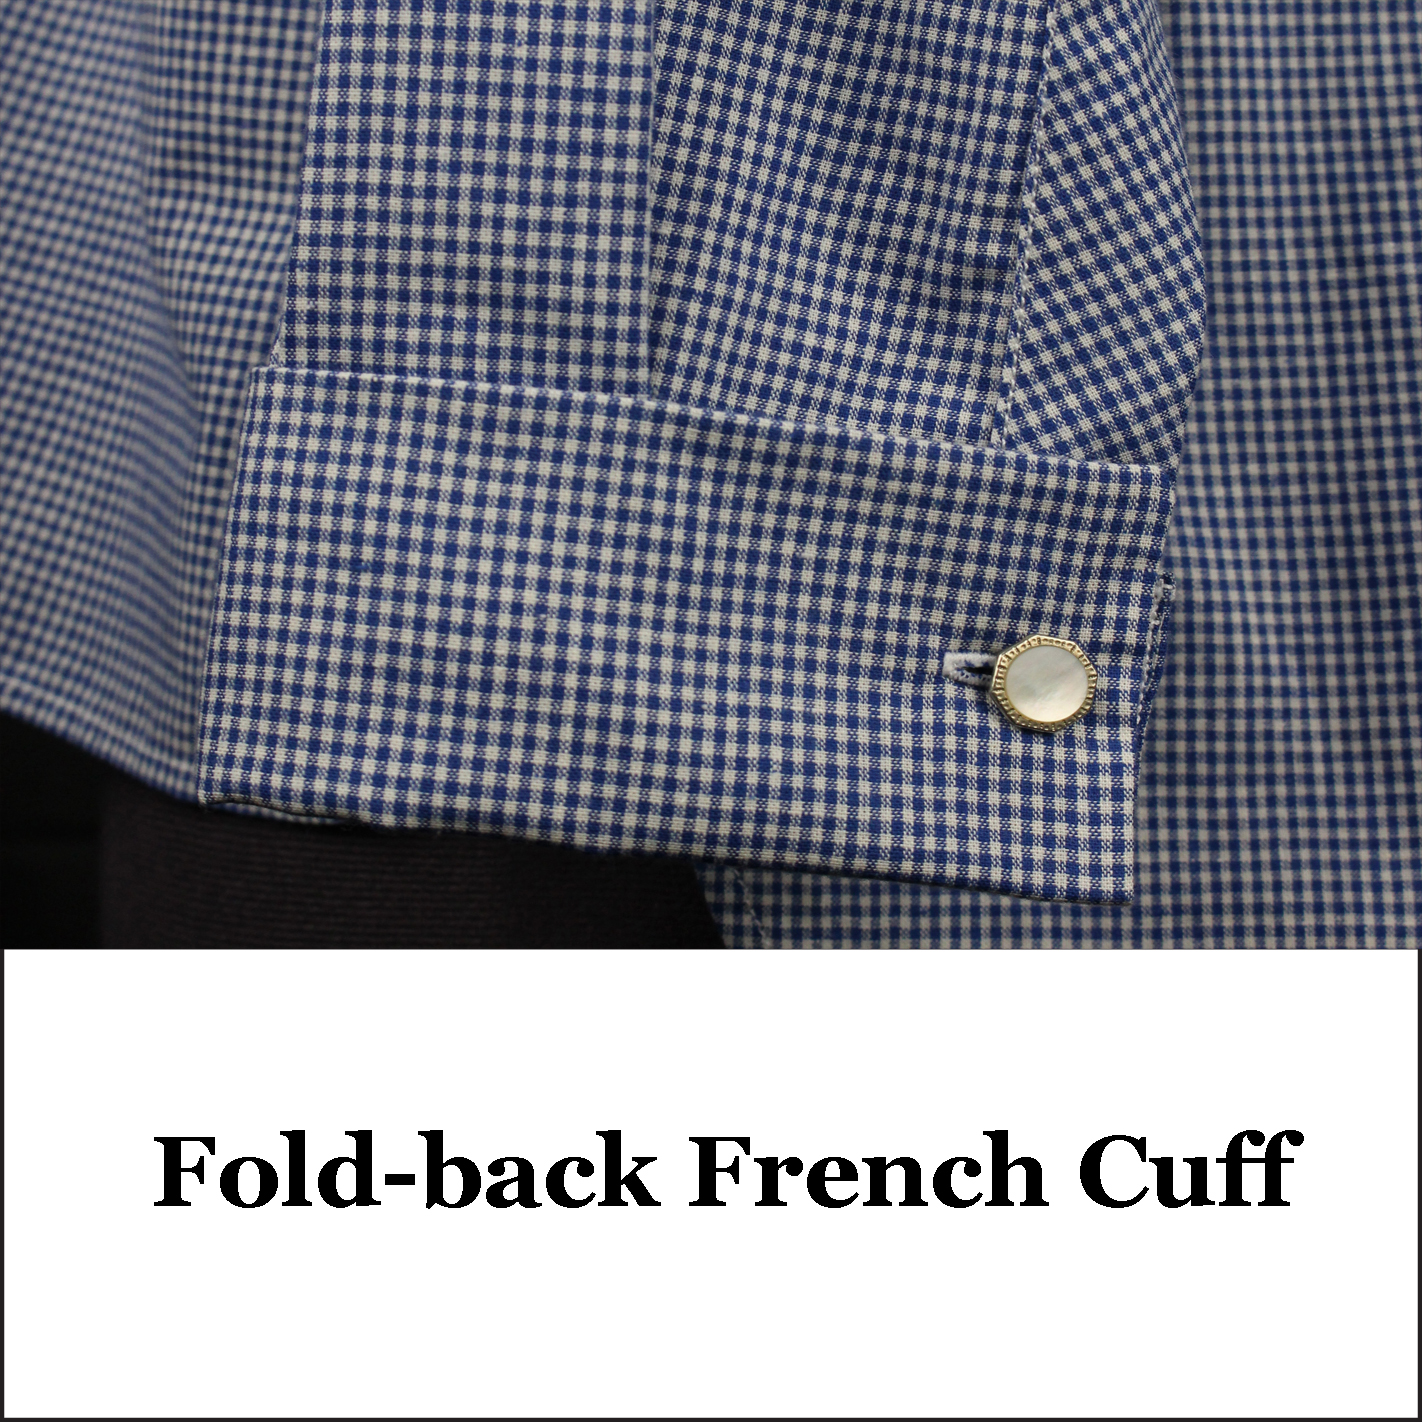 ArchiveFrenchCuff.jpg